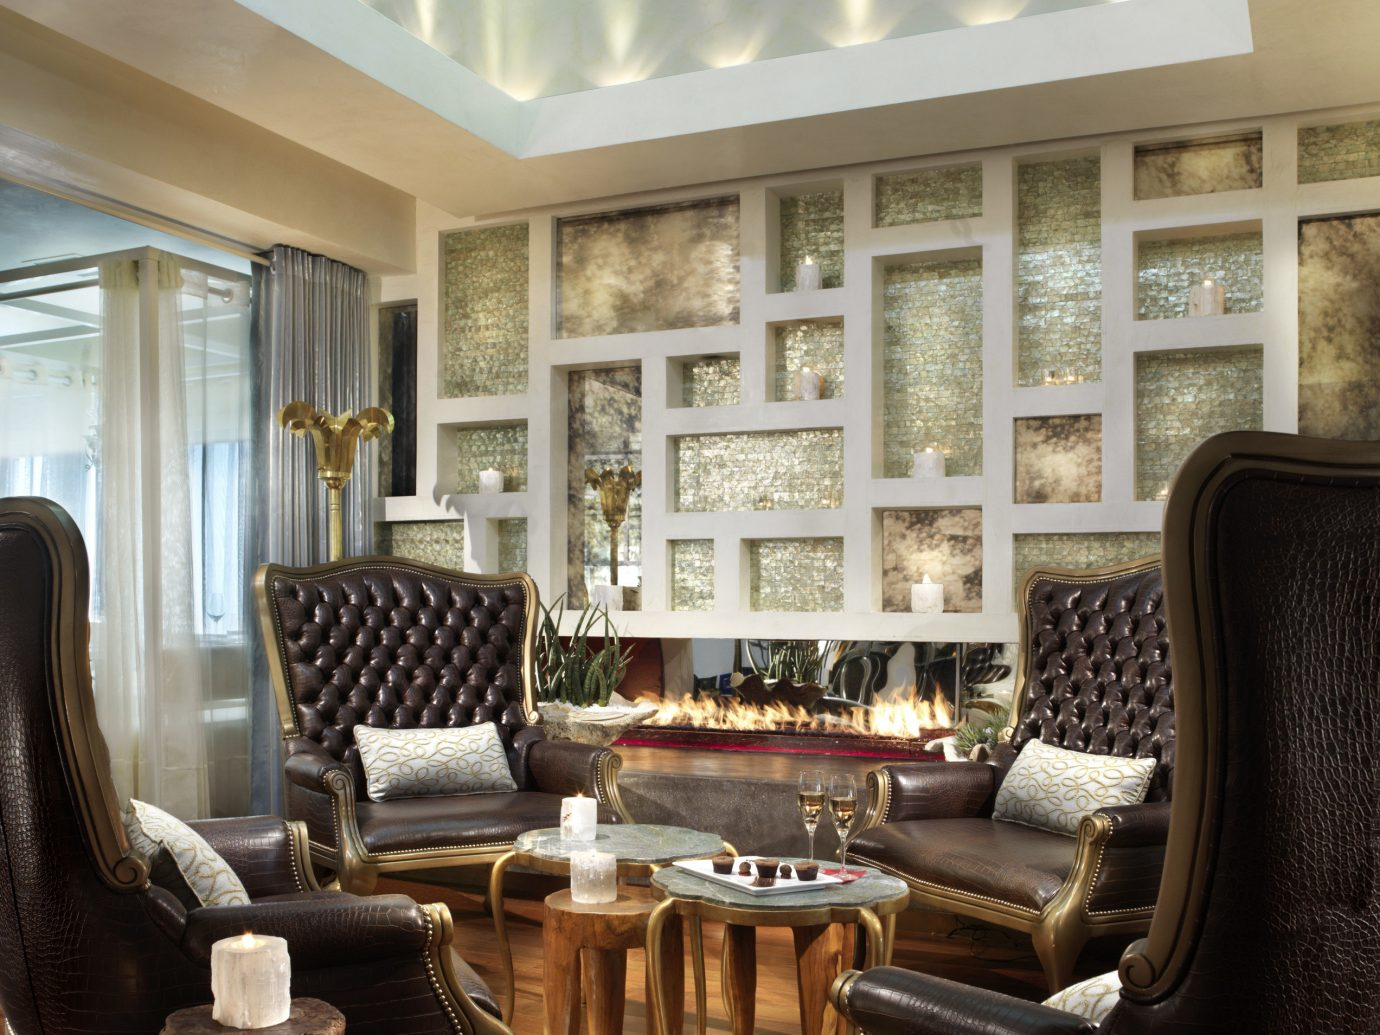 Food + Drink indoor floor Living Lobby room chair property window living room ceiling furniture interior design estate home dining room real estate condominium window covering mansion area